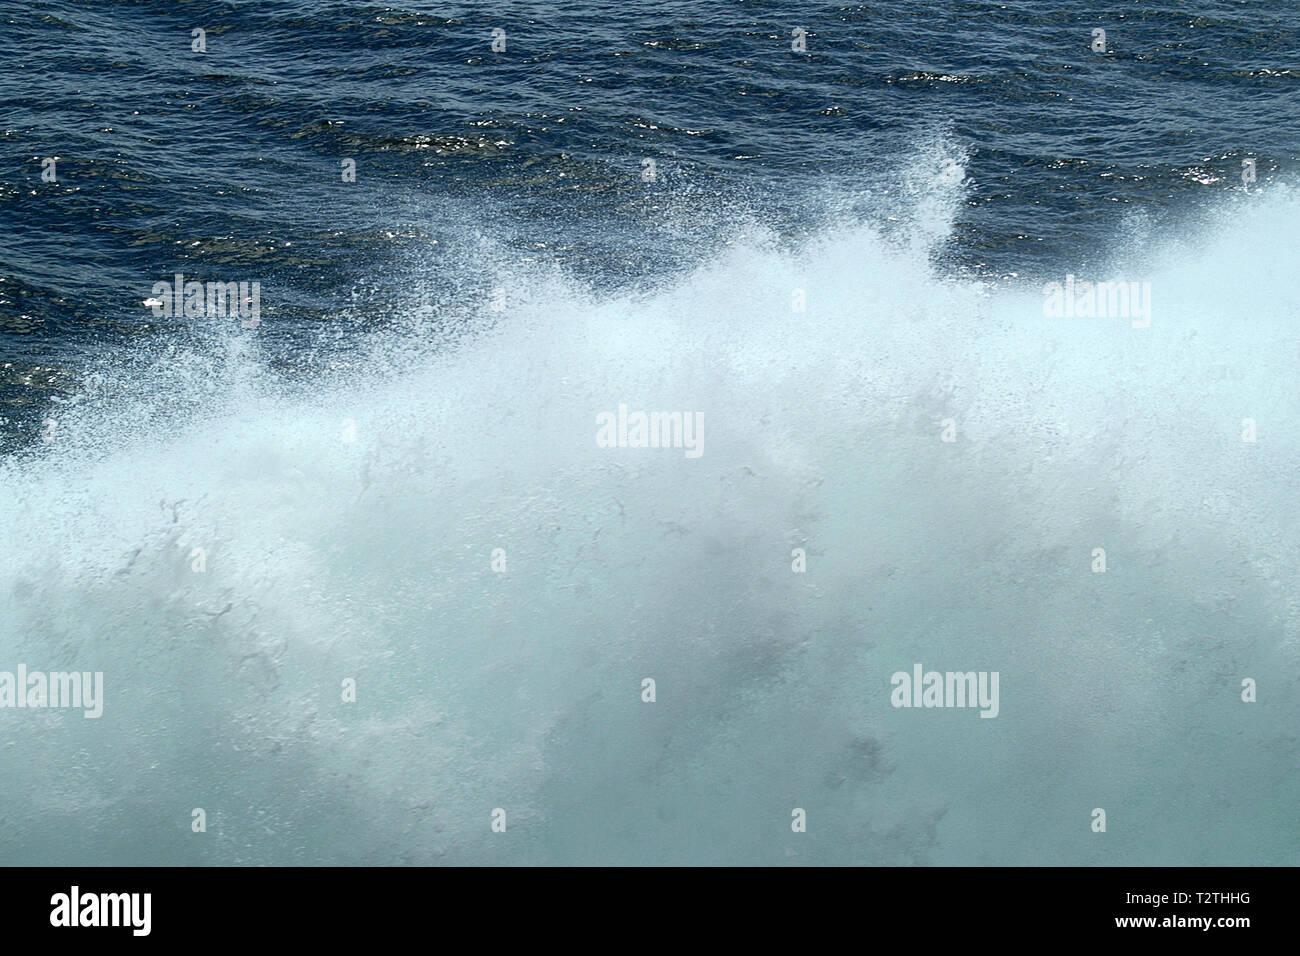 tsunami, tidal wave, seismic sea wave Stock Photo